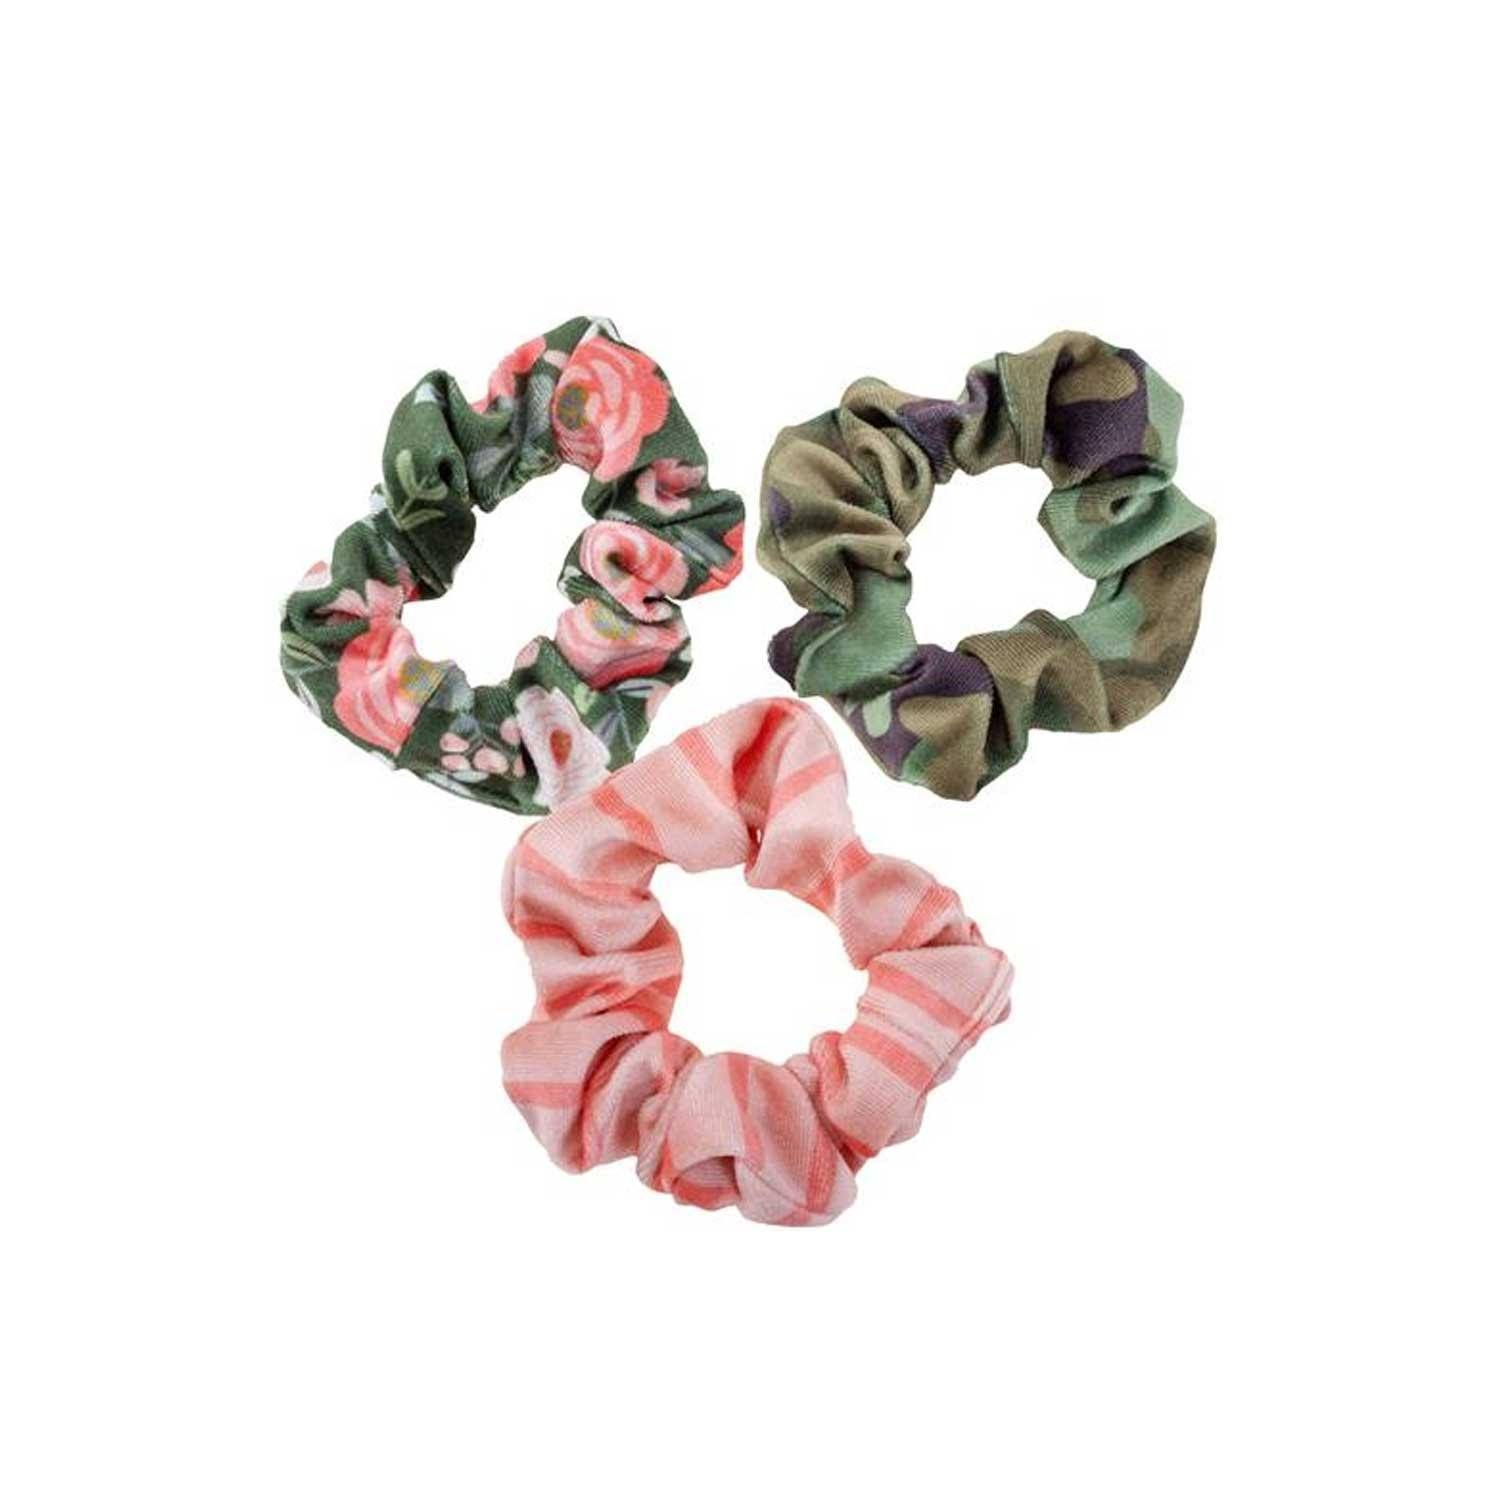 Karma Men's Hair Tie Pink & Green Scrunchie Set One-Size